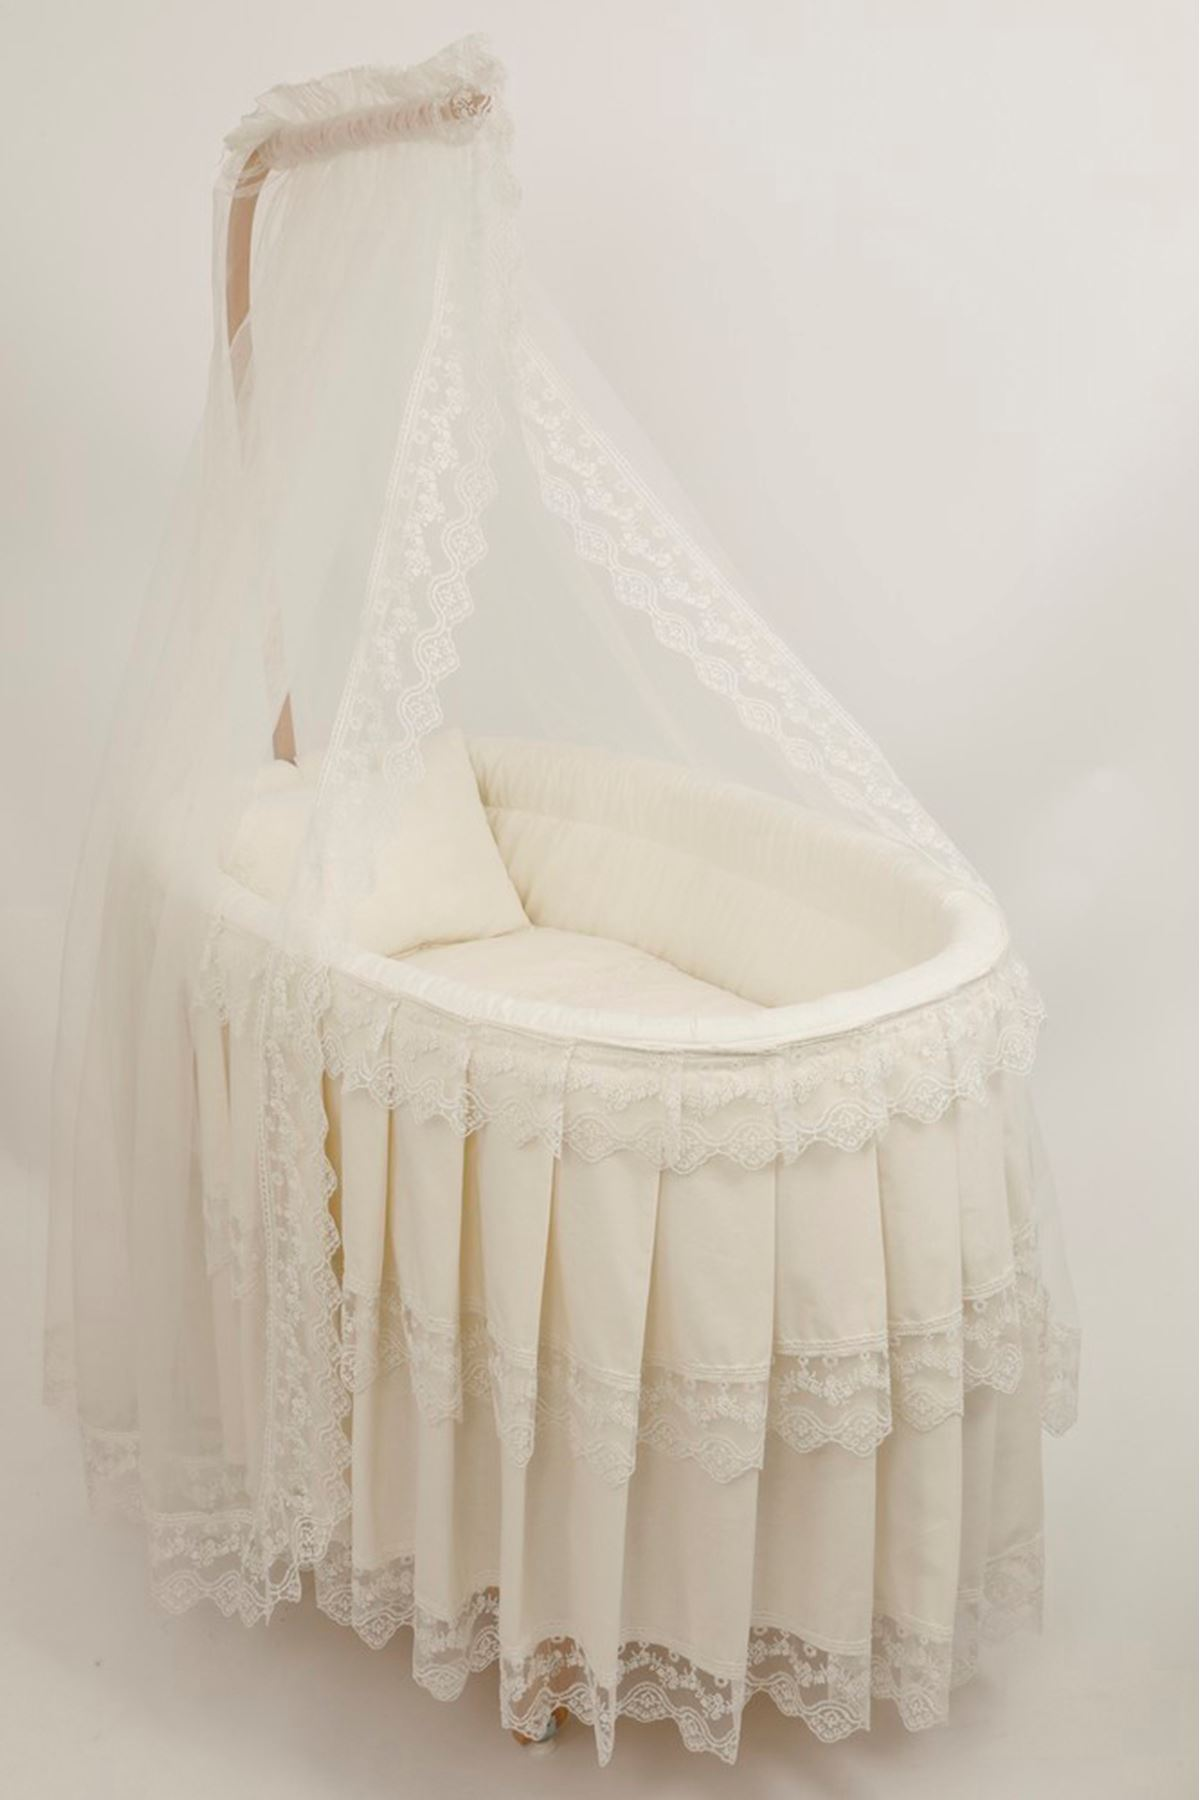 Basket Cradle with Fabric Skirt